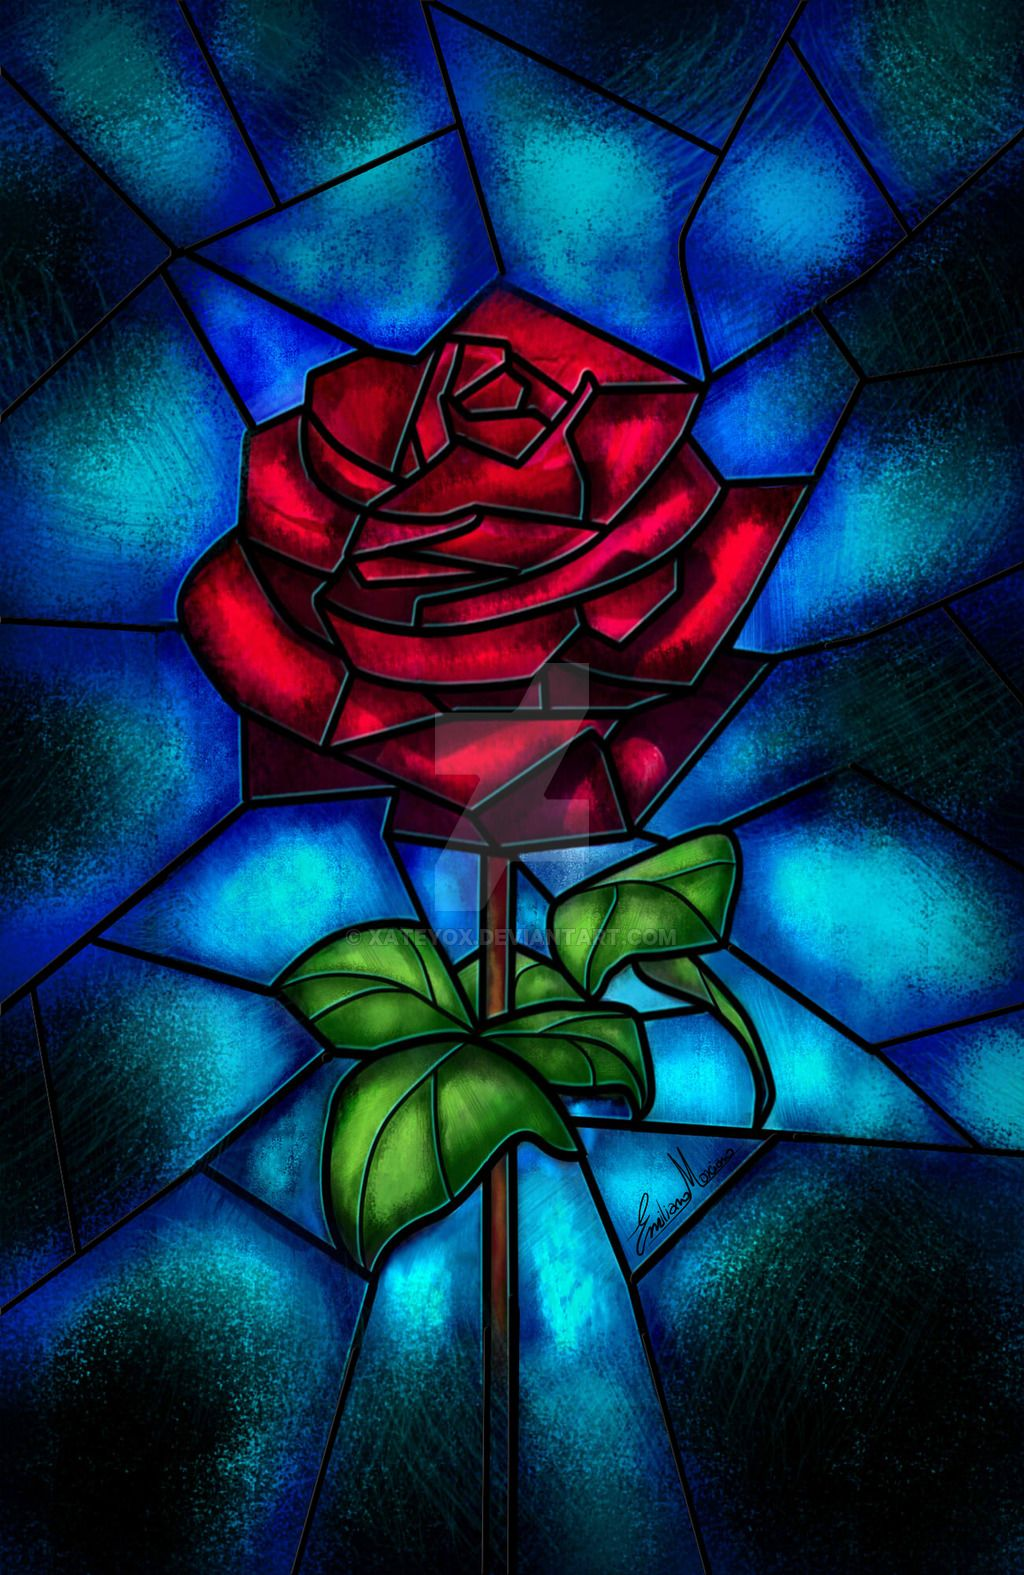 Free Download Disneybackgroundwallpaperroseenchantedbeautyandbeast